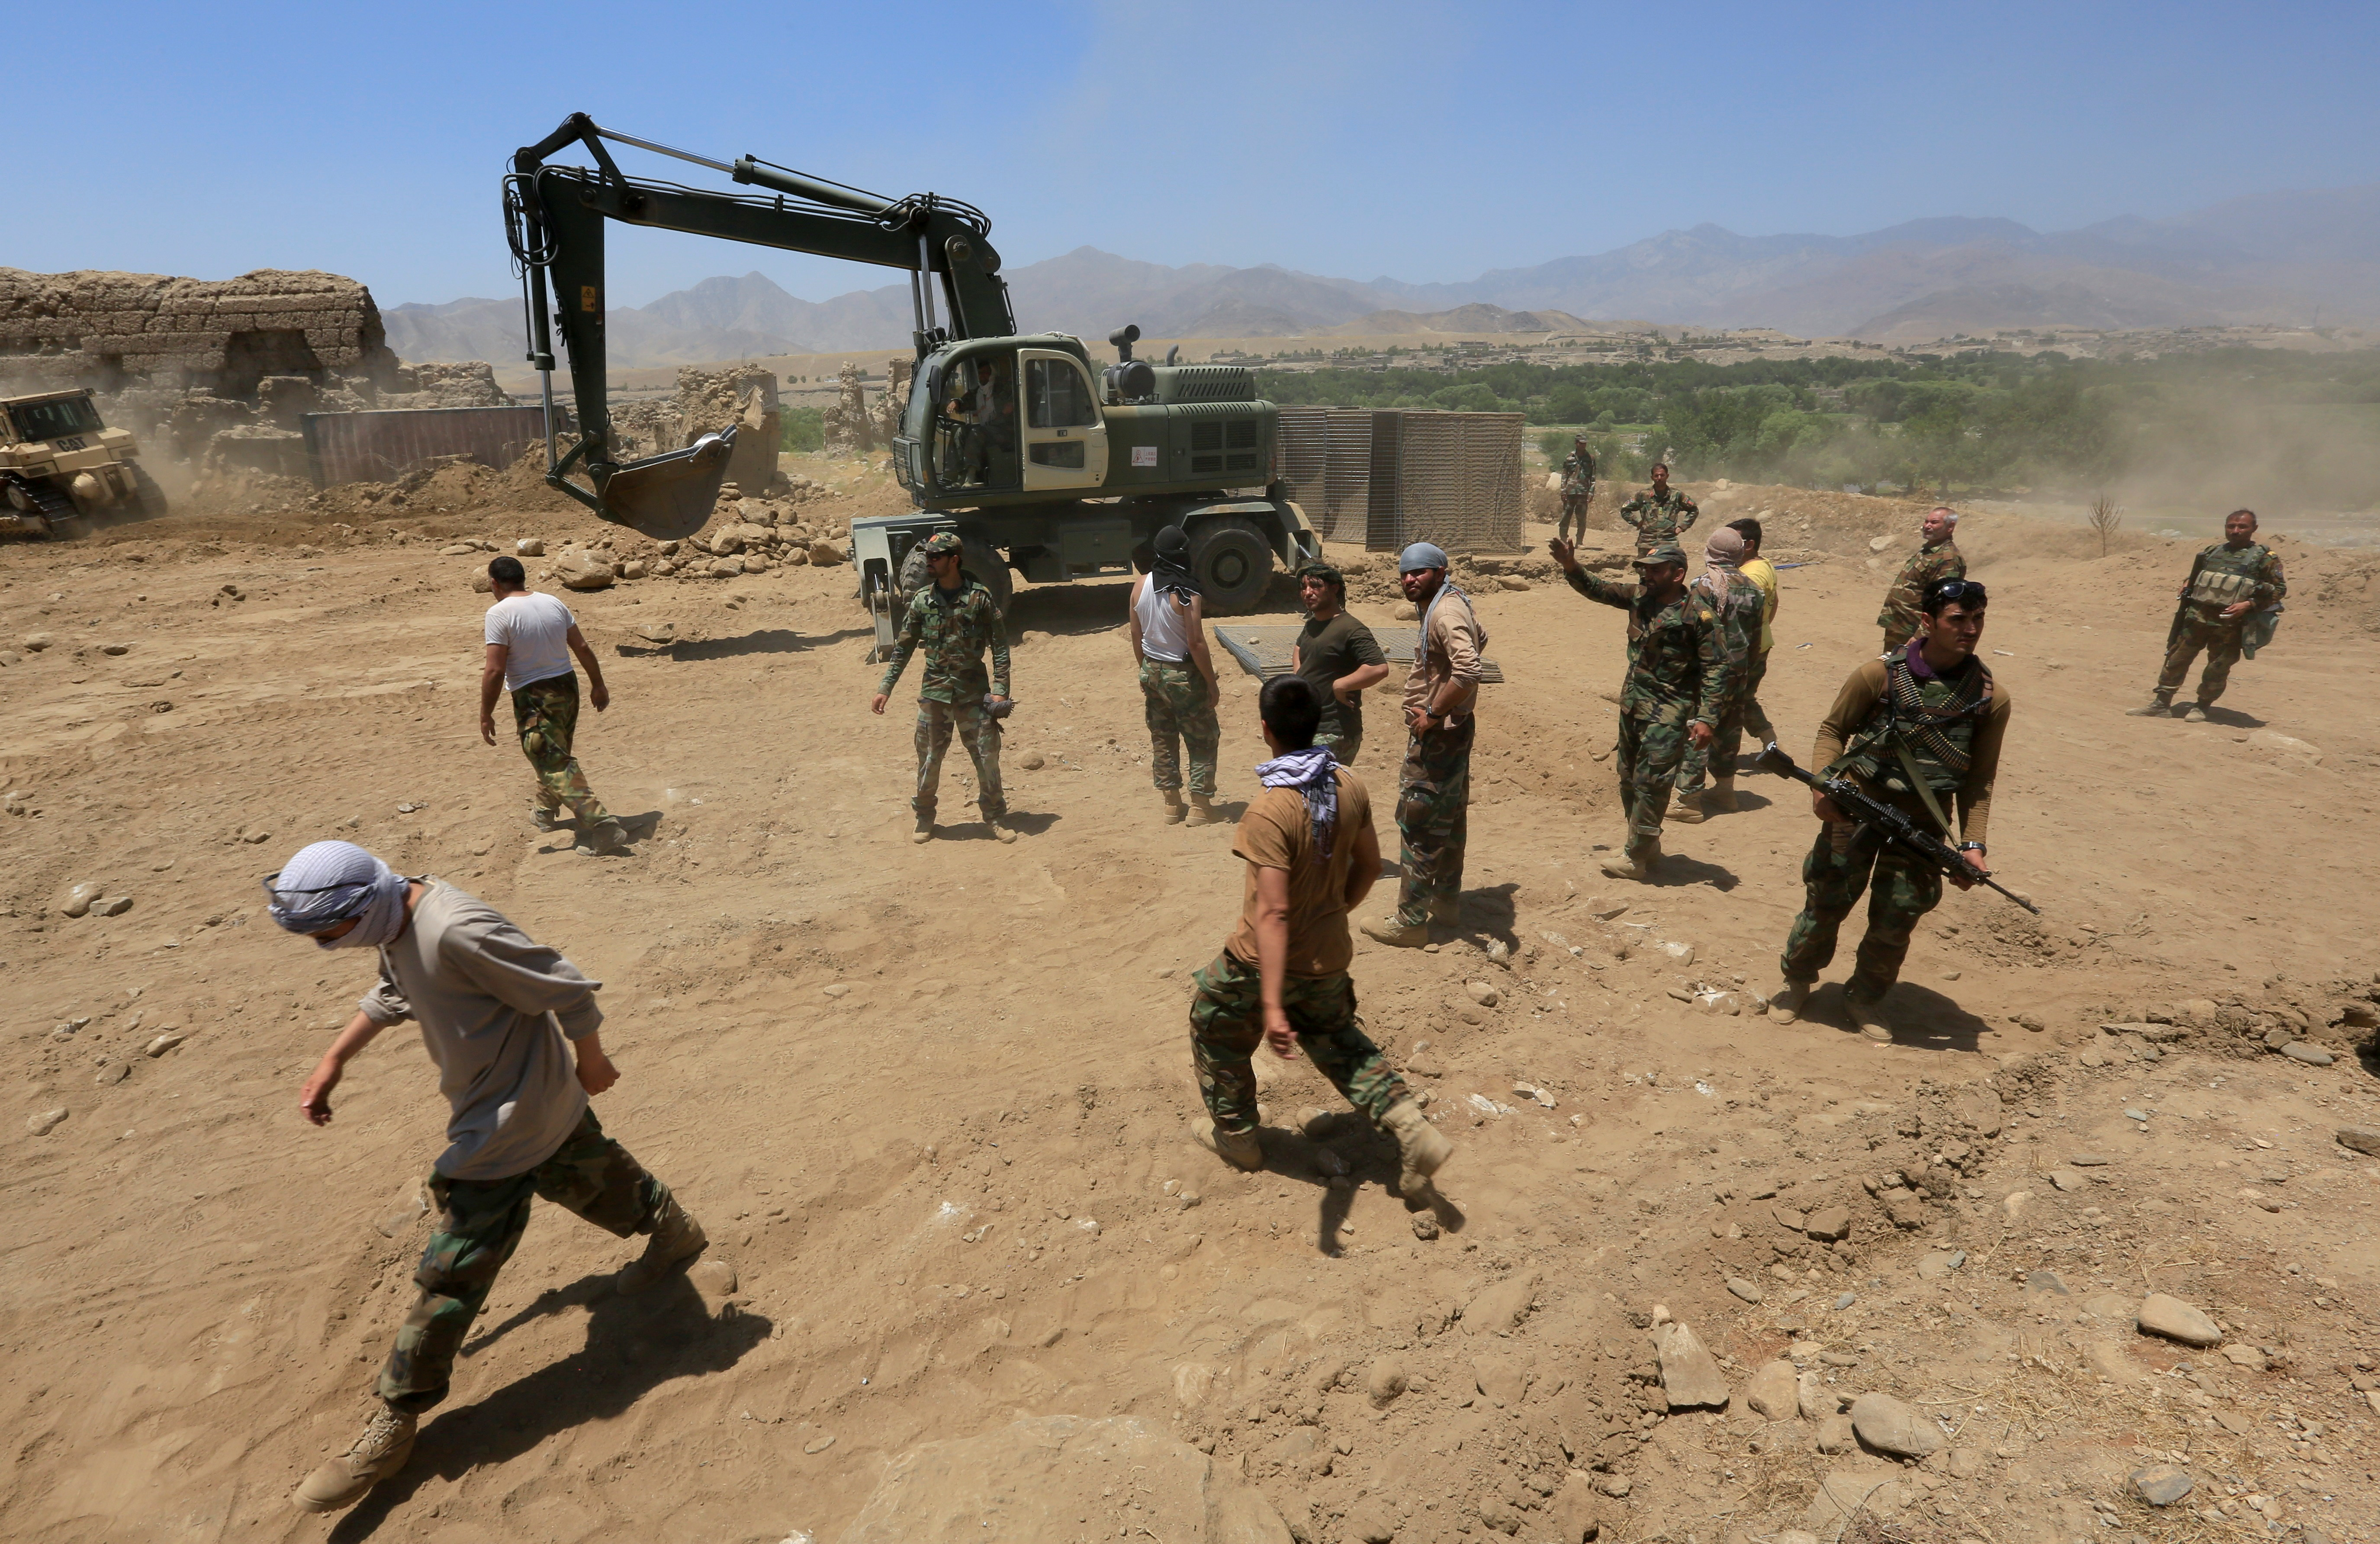 Afghan National Army (ANA) soldiers rebuild a checkpoint recaptured from the Taliban, in the Alishing district of Laghman province, Afghanistan July 8, 2021. REUTERS/Parwiz